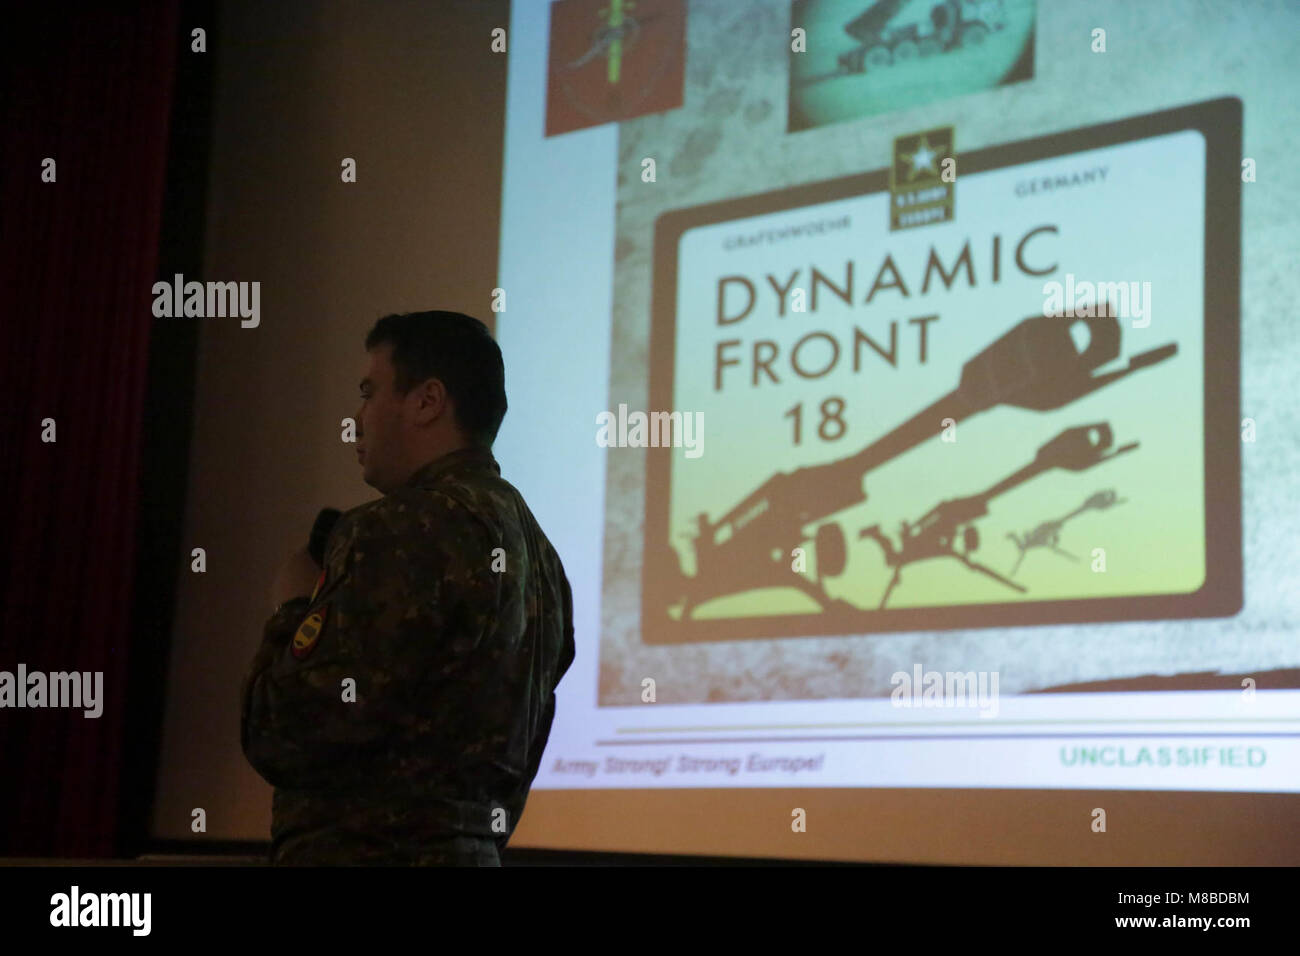 A french soldier presents a powerpoint presentation while conducting a french soldier presents a powerpoint presentation while conducting an academics brief during exercise dynamic front 18 at 7th army training commands toneelgroepblik Choice Image